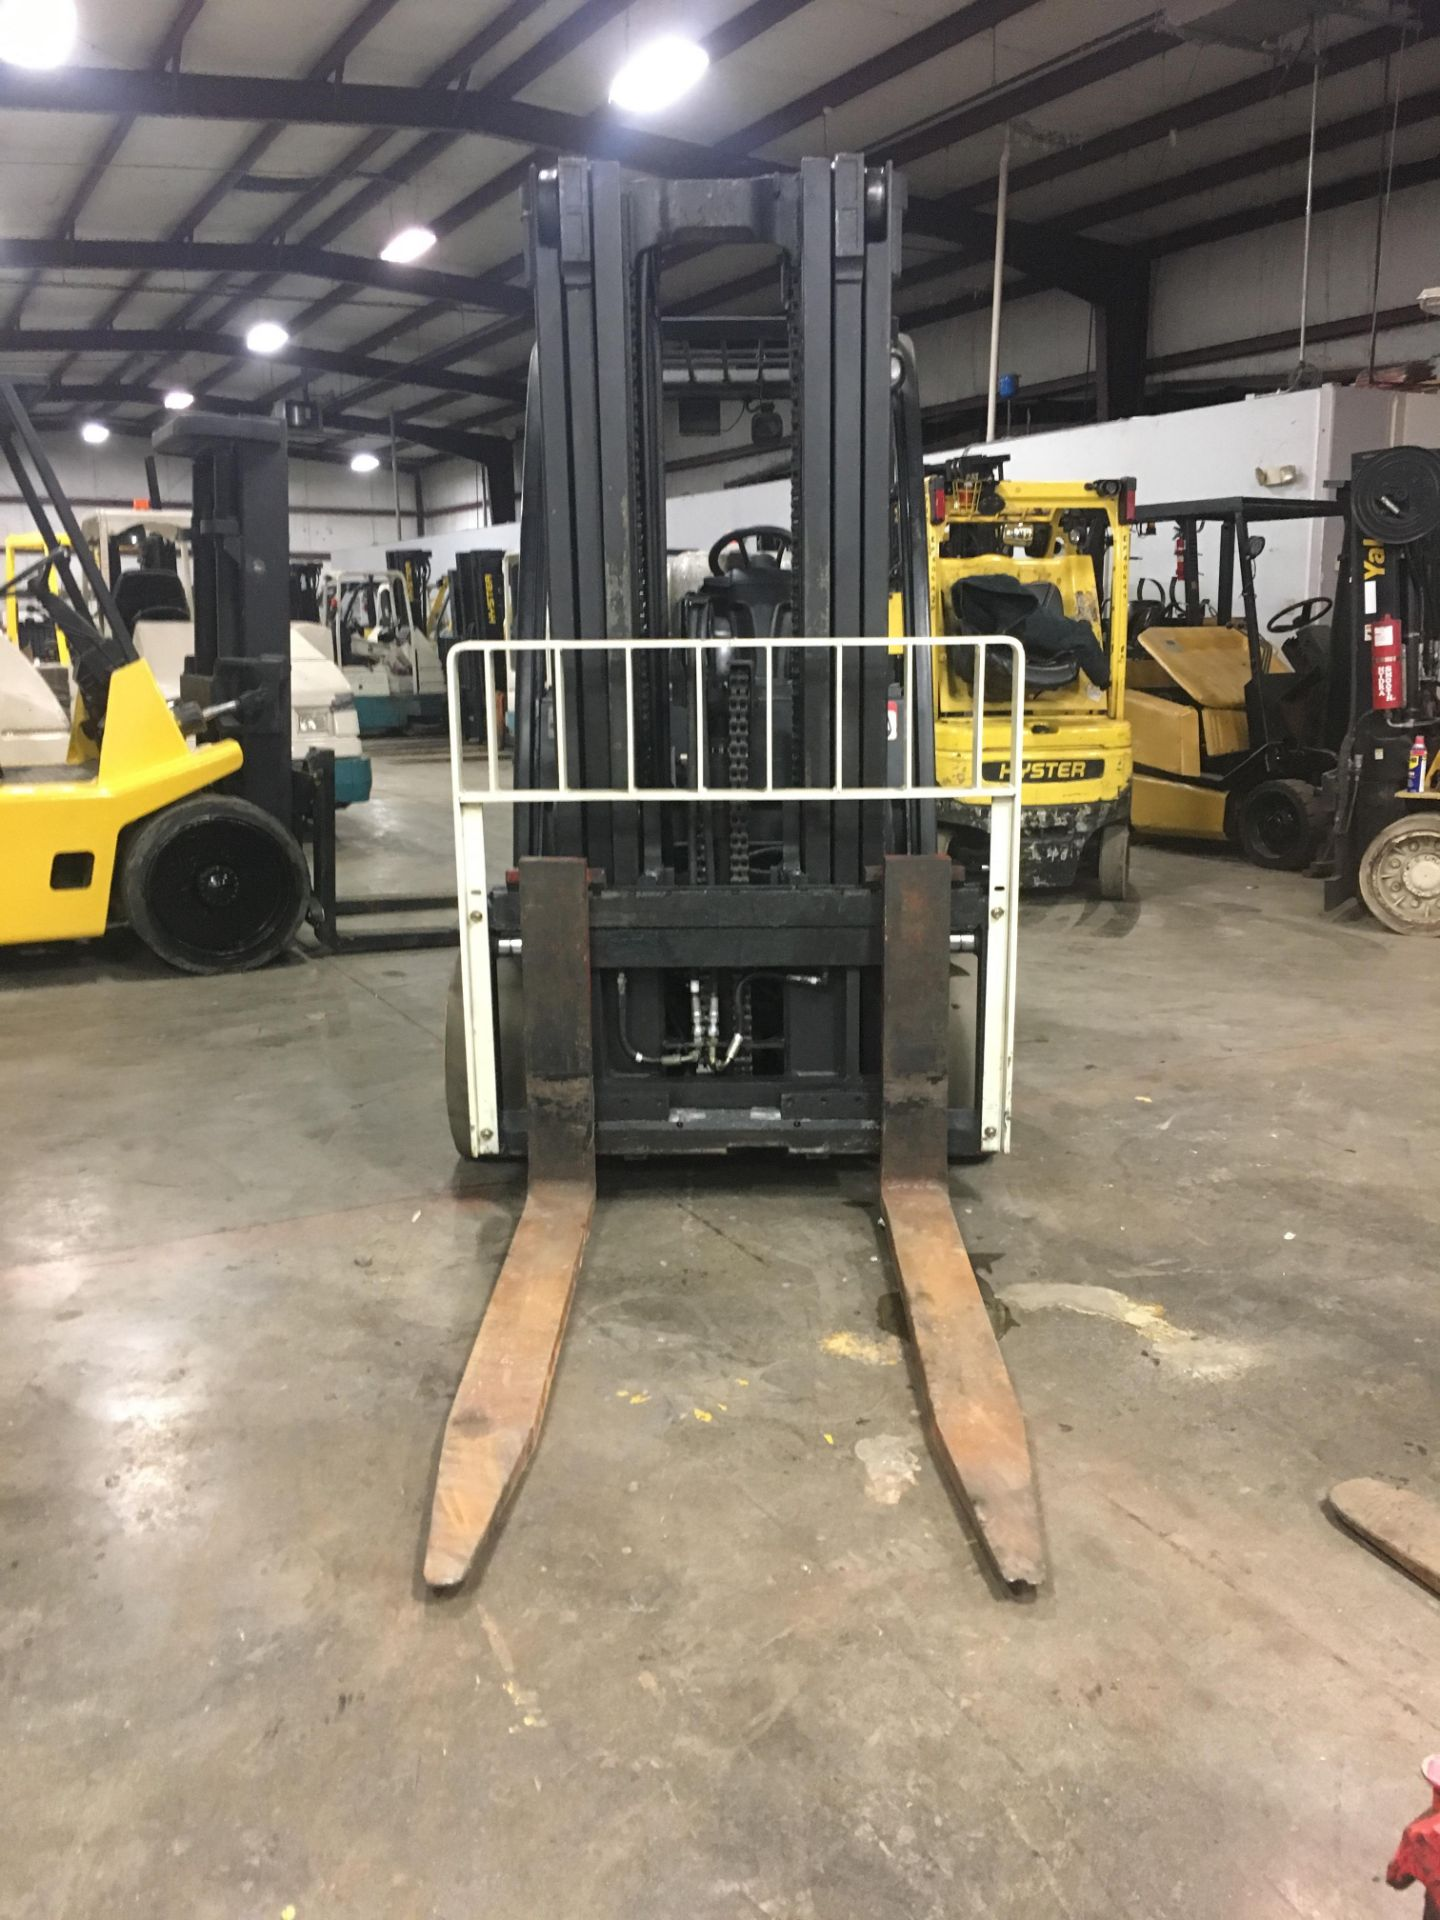 Lot 3A - 2006 YALE 12,000-LB. CAPACITY FORKLIFT, MODEL: GLC120VX, LPG, SOLID TIRES, 3-STAGE MAST, 9,483 HOURS